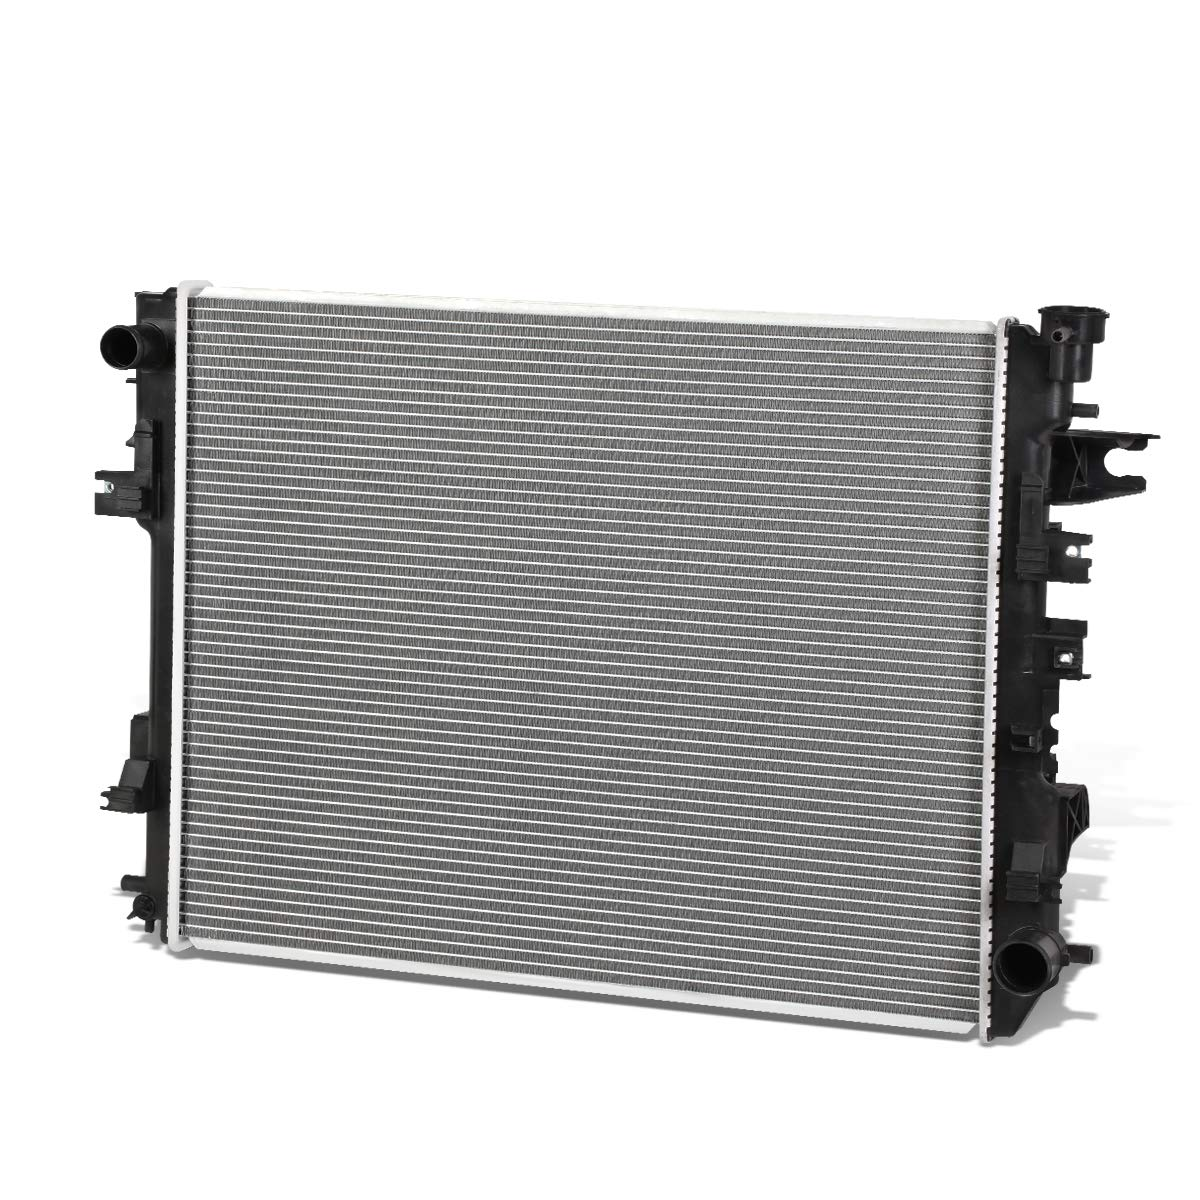 13129 Factory Style Aluminum Cooling Radiator for 09-18 Ram Truck 1500/2500/3500 3.6L/3.7L/4.7L/5.7L/6.4L AT Auto Dynasty